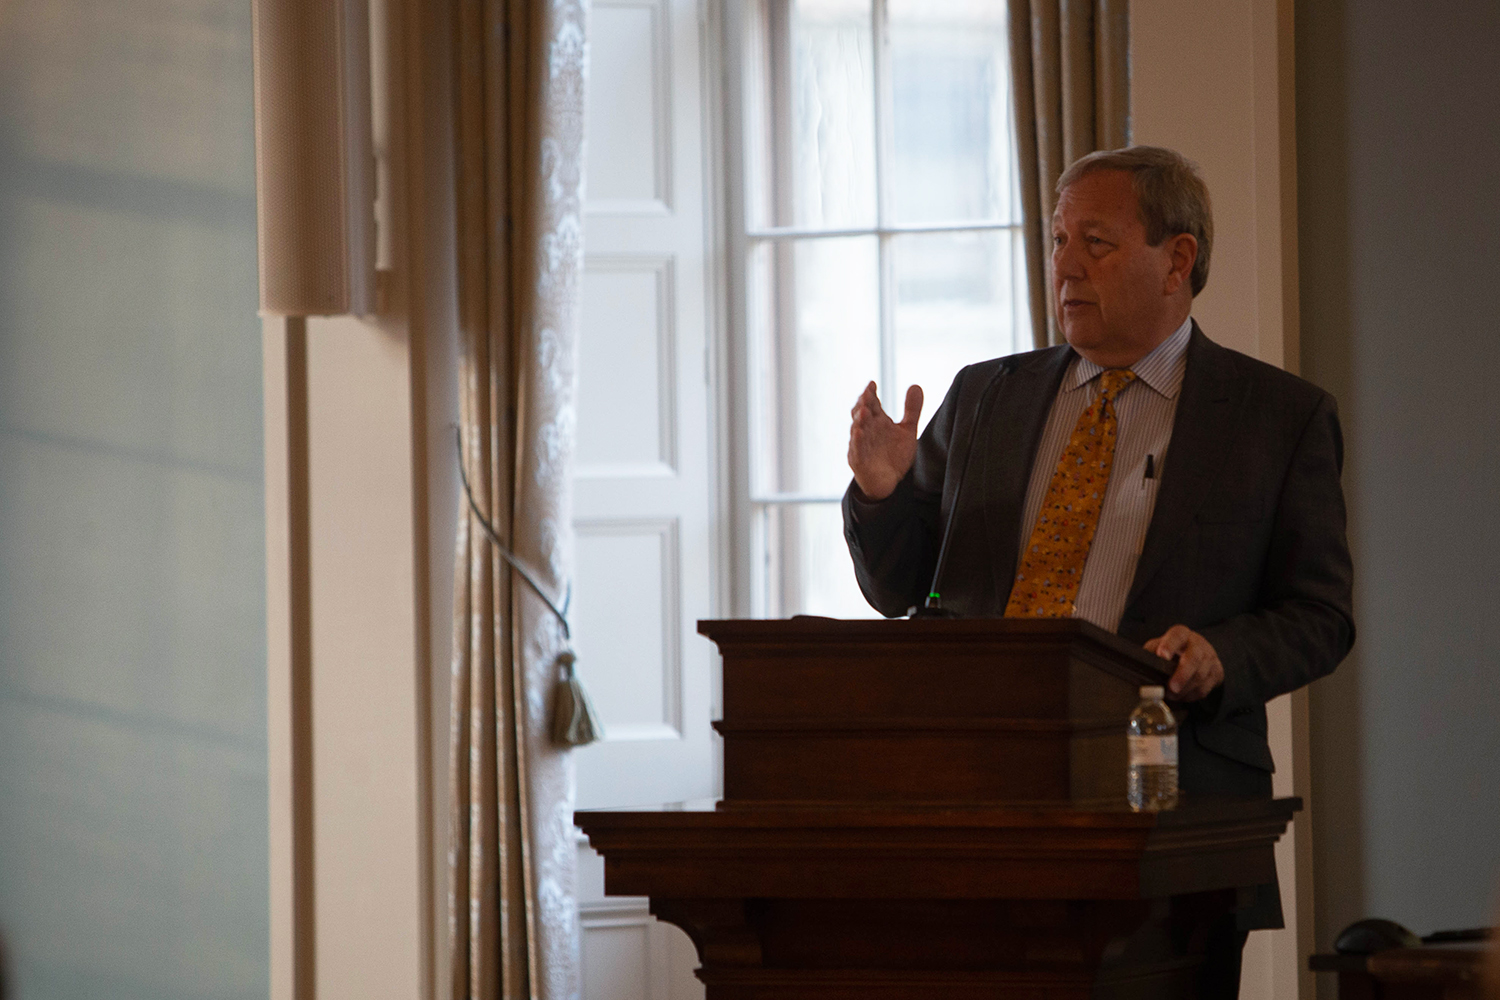 University of Iowa President Bruce Harreld addresses the Faculty Senate during a meeting in the Old Capitol Senate Chambers on Tuesday, Dec. 10, 2019. Harreld talked about the approval of the public/private partnership.